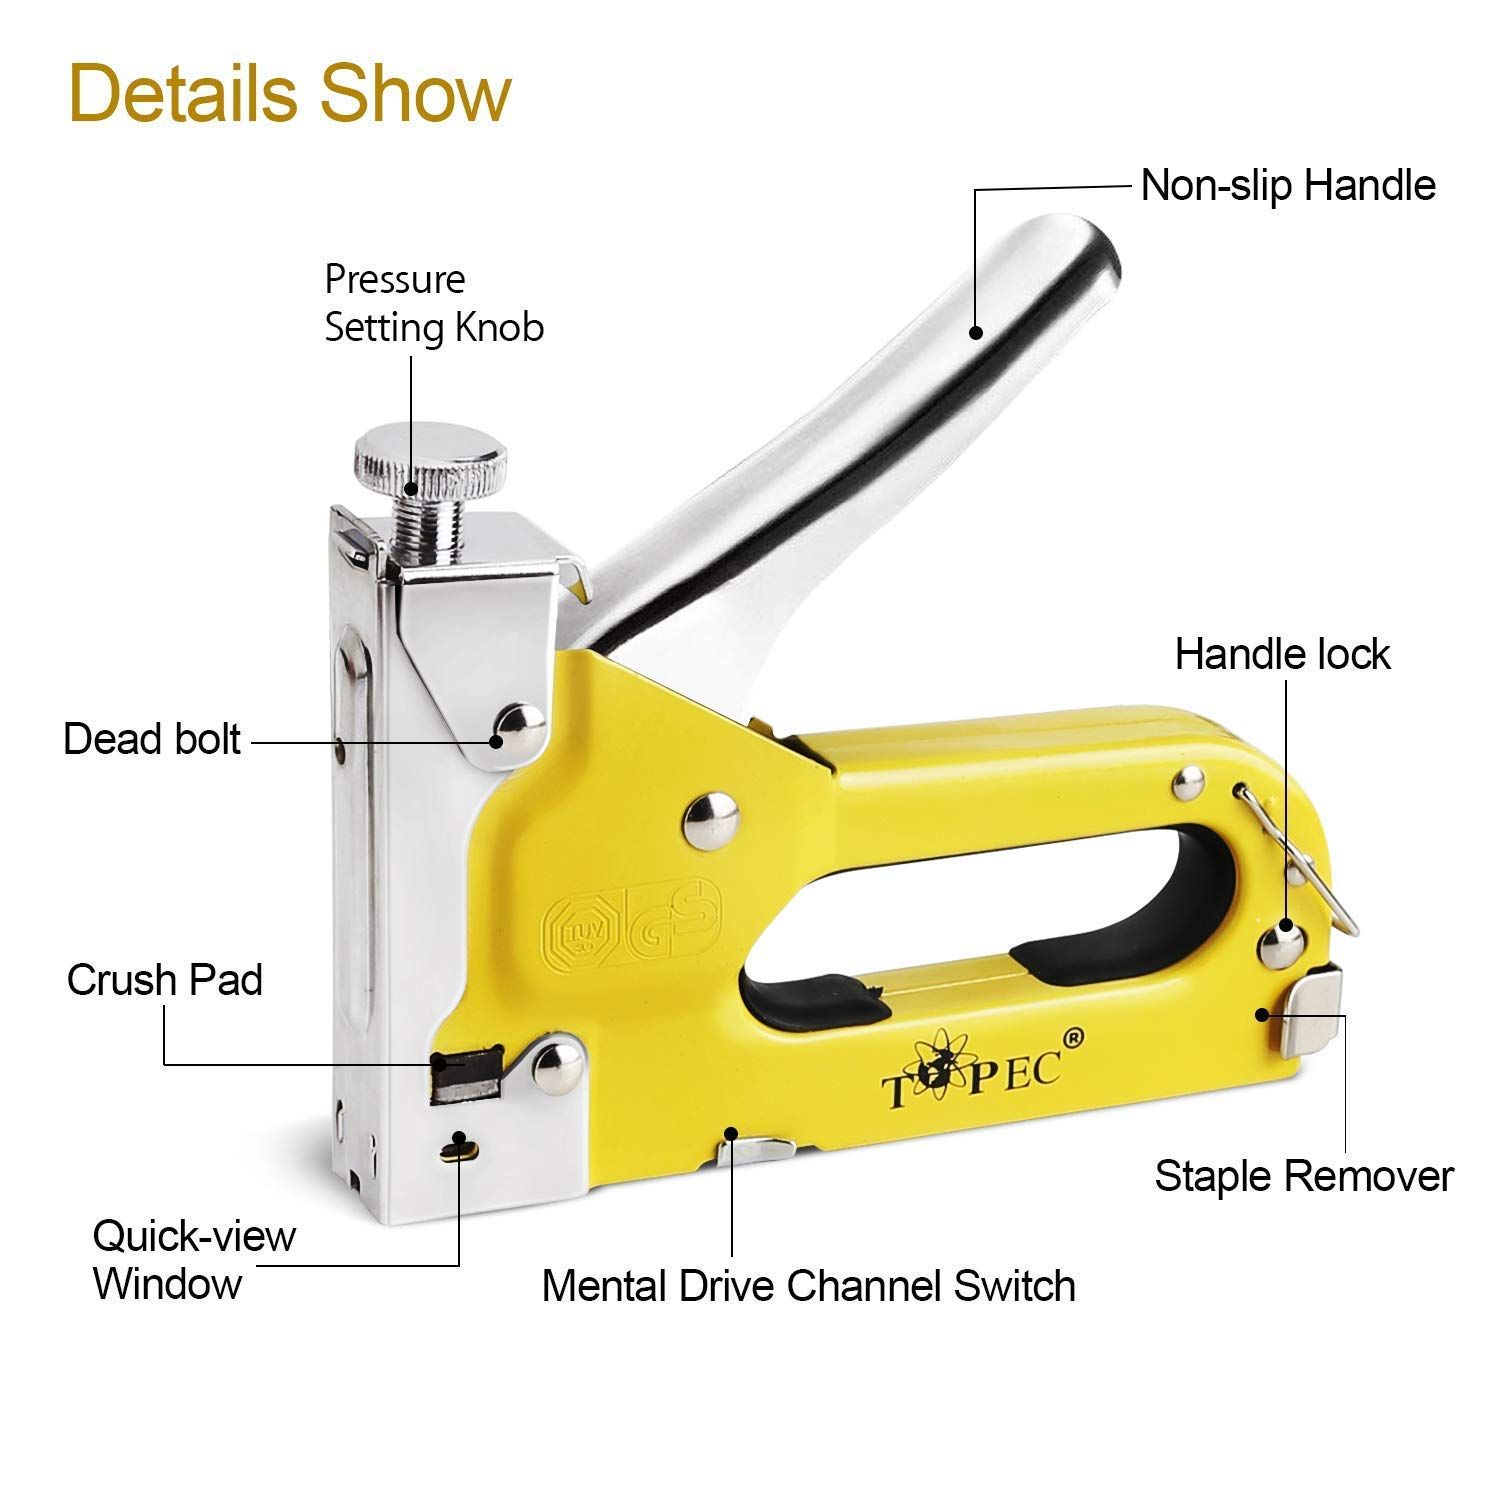 Staple Gun 3 In 1 Manual Nail Gun With 1800 Staples Heavy Duty